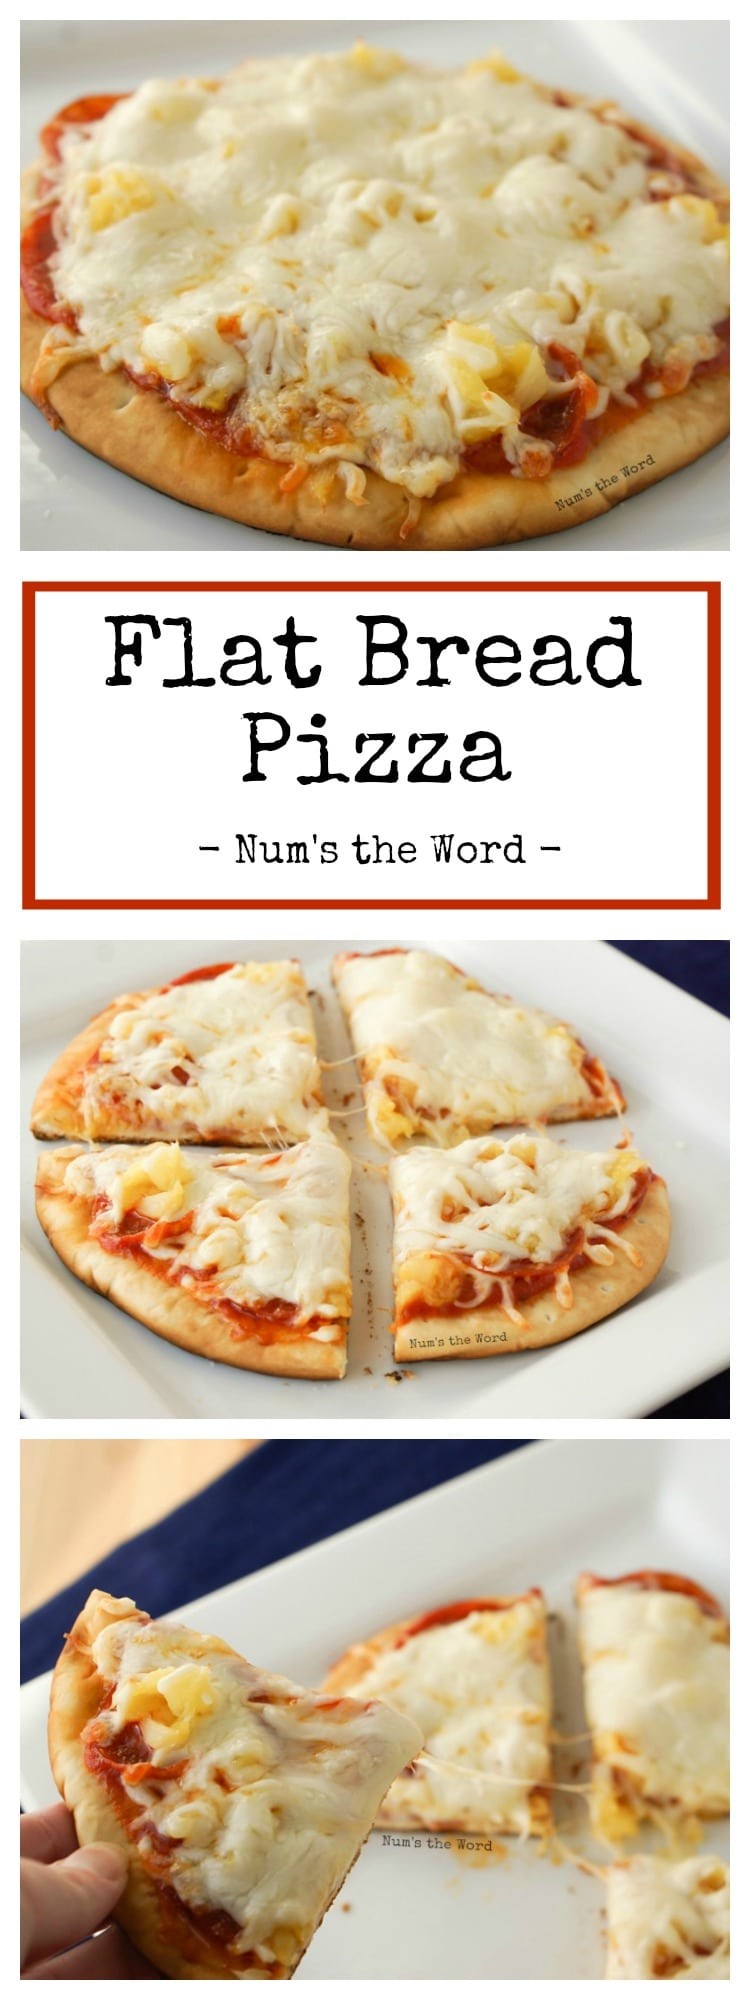 Flat Bread Pizza